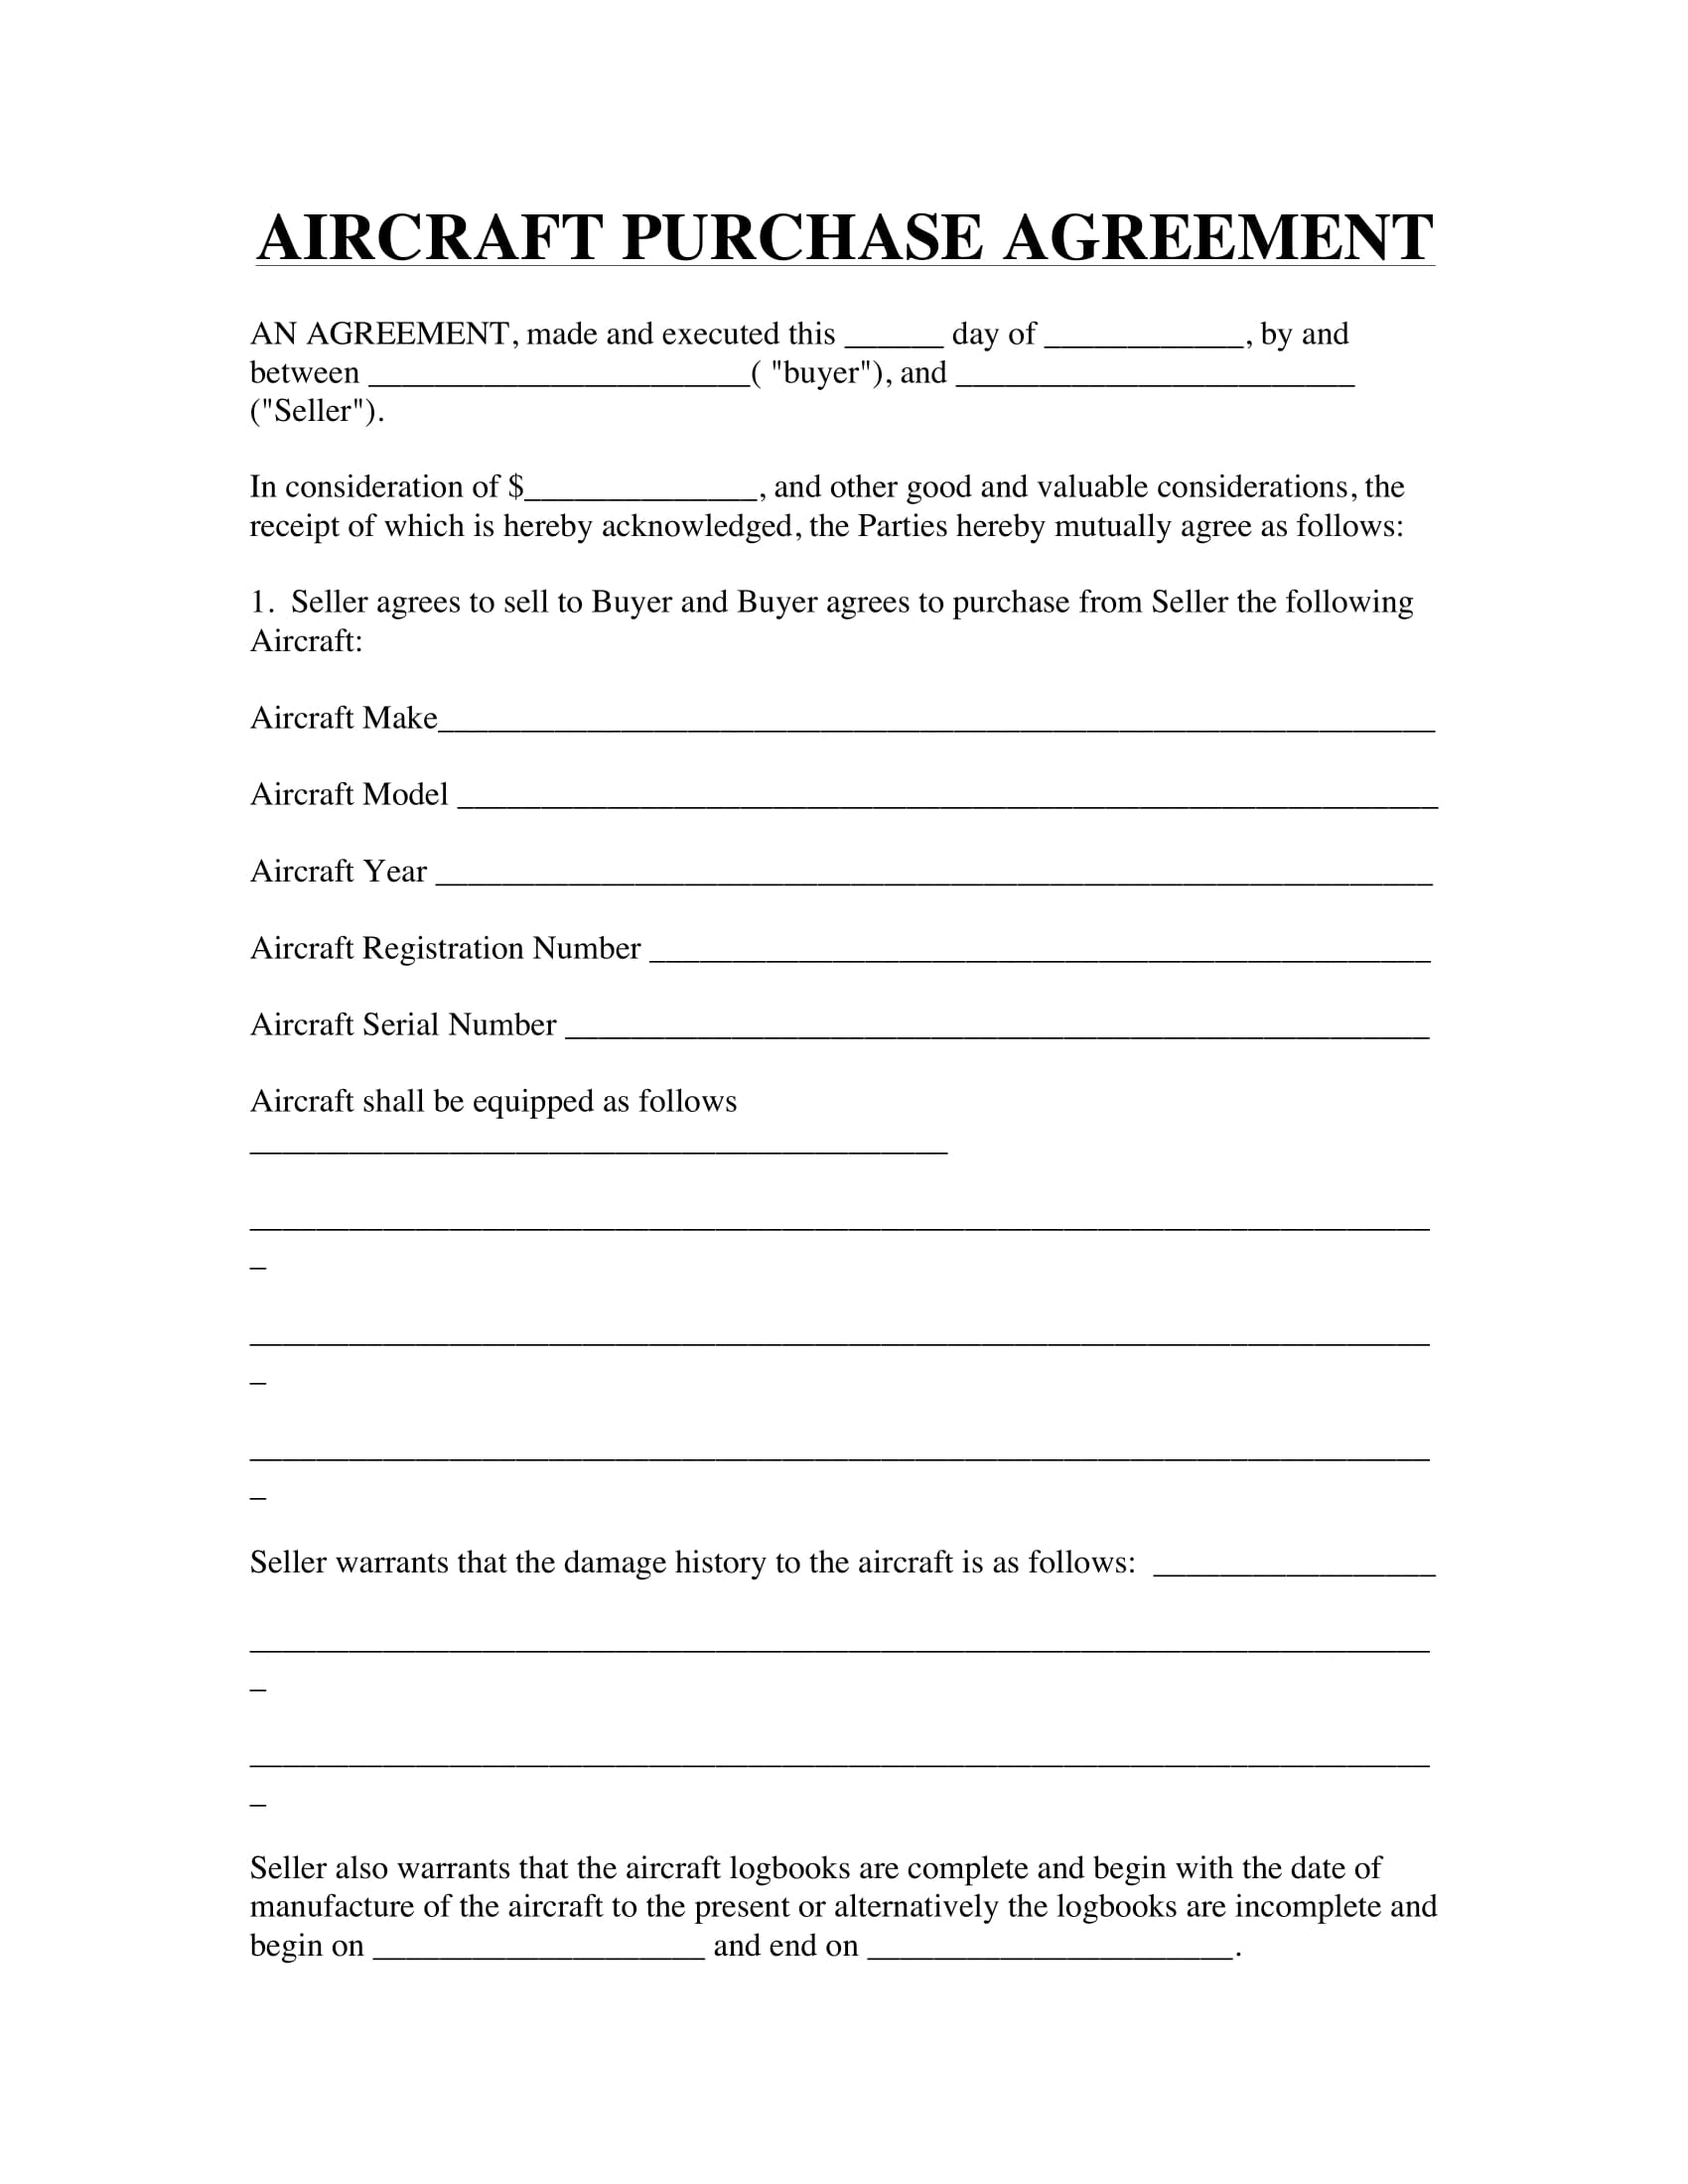 aircraft purchase agreement example